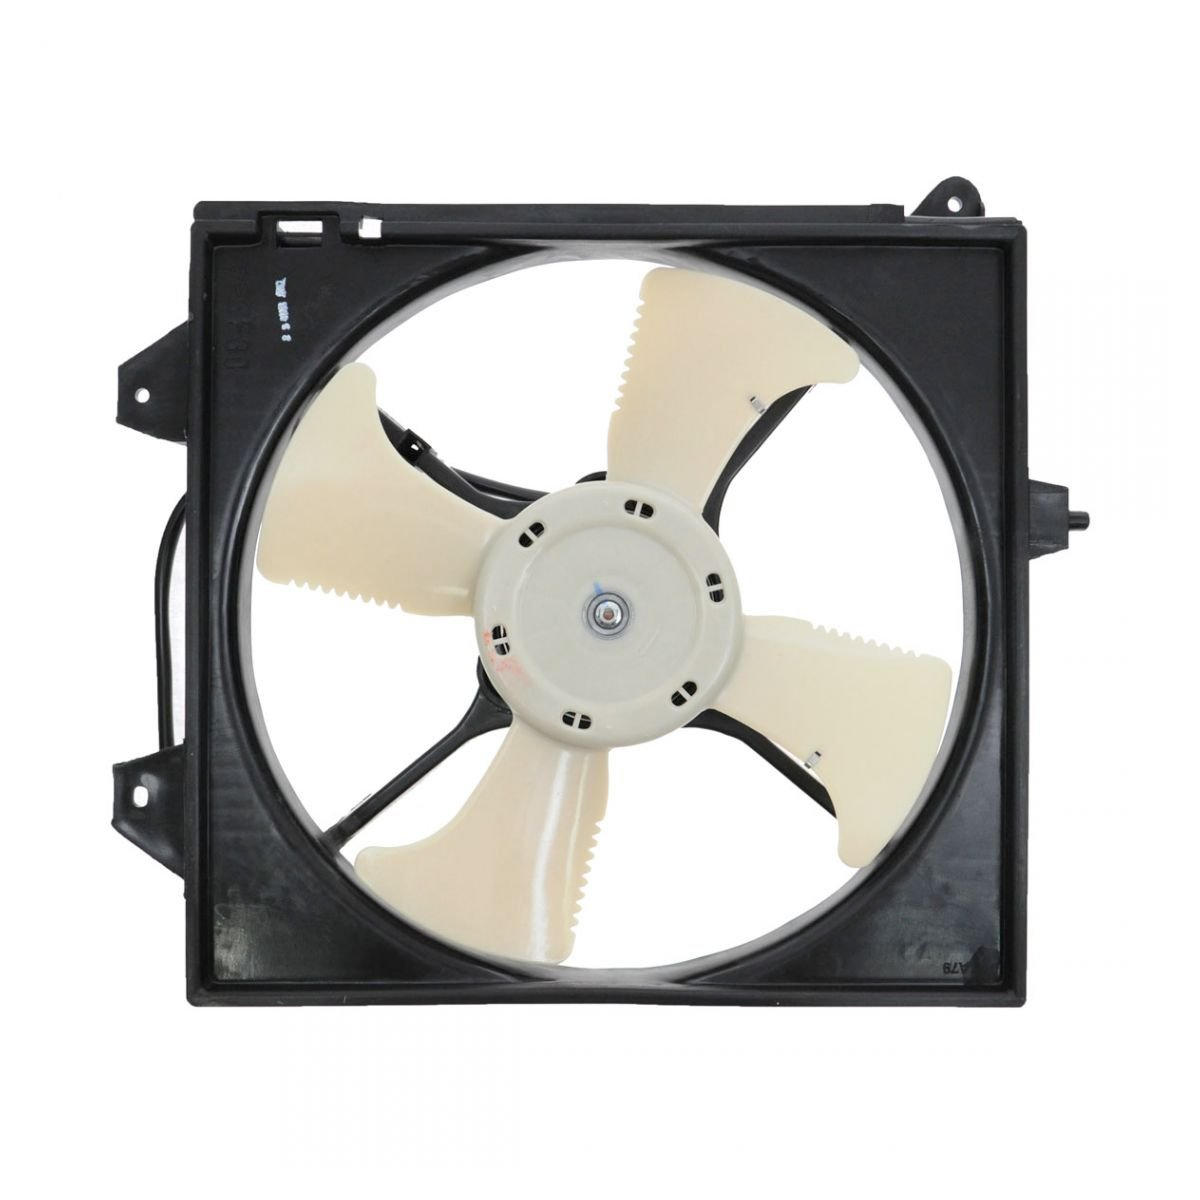 A/C AC Condenser Cooling Fan Assembly for 02 Mitsubishi Lancer